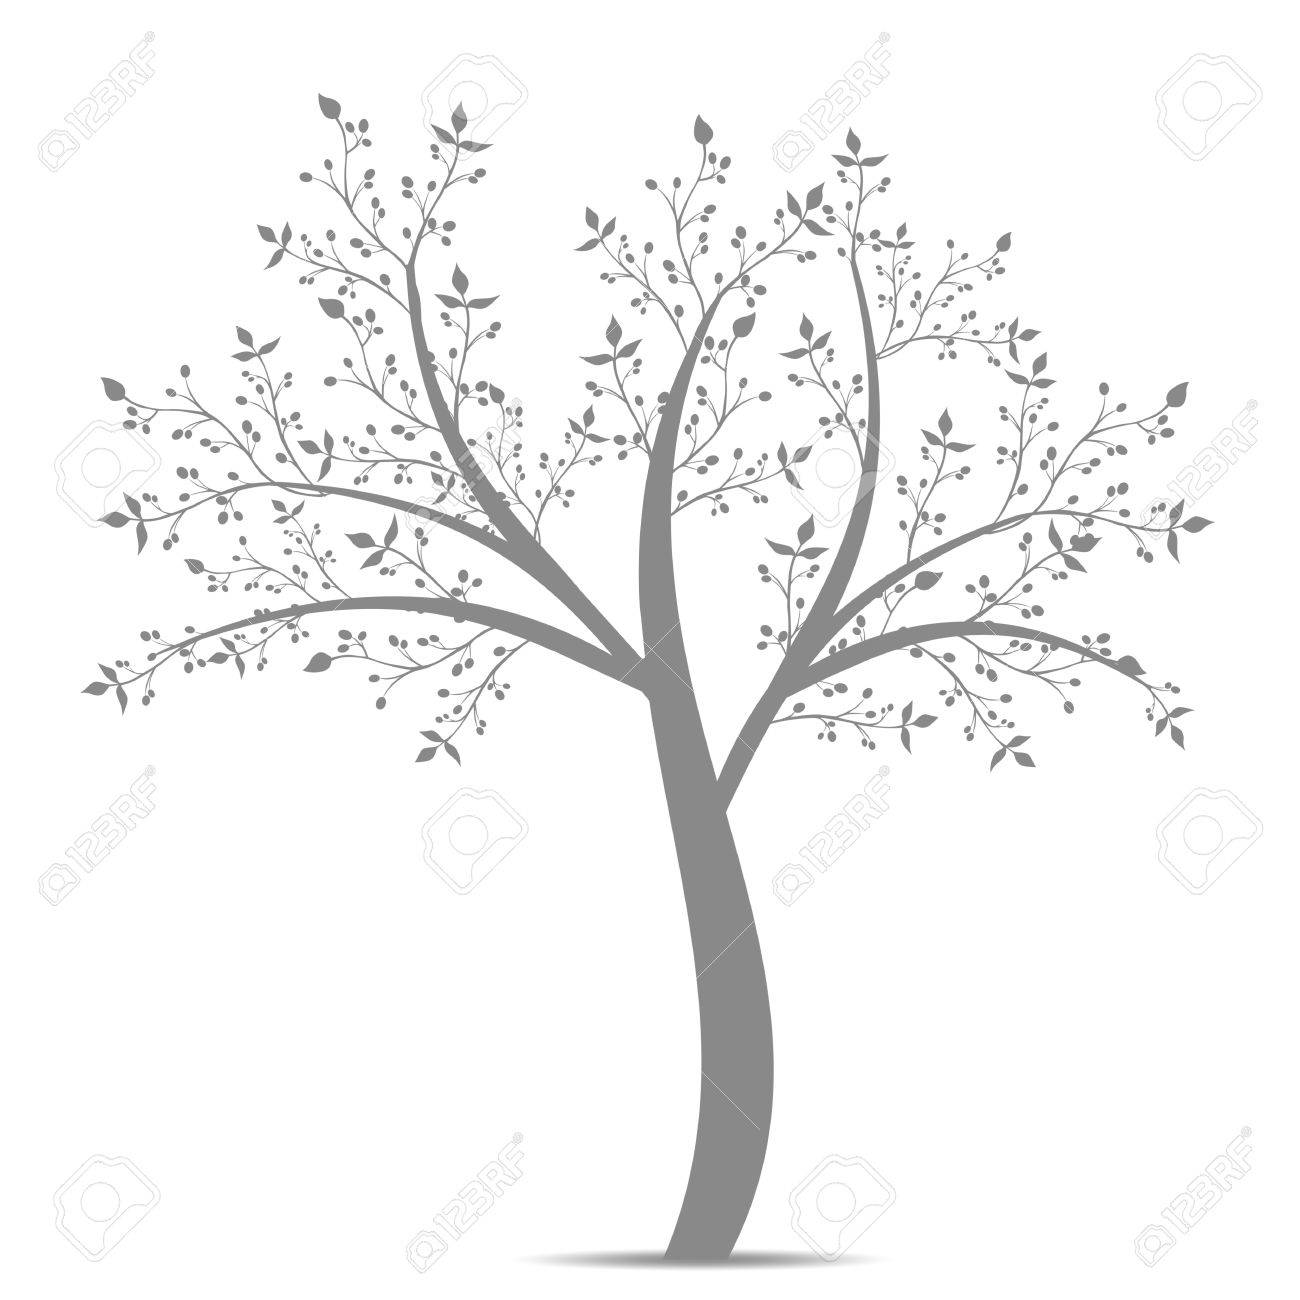 Olive tree isolated on white background Stock Vector - 12490038